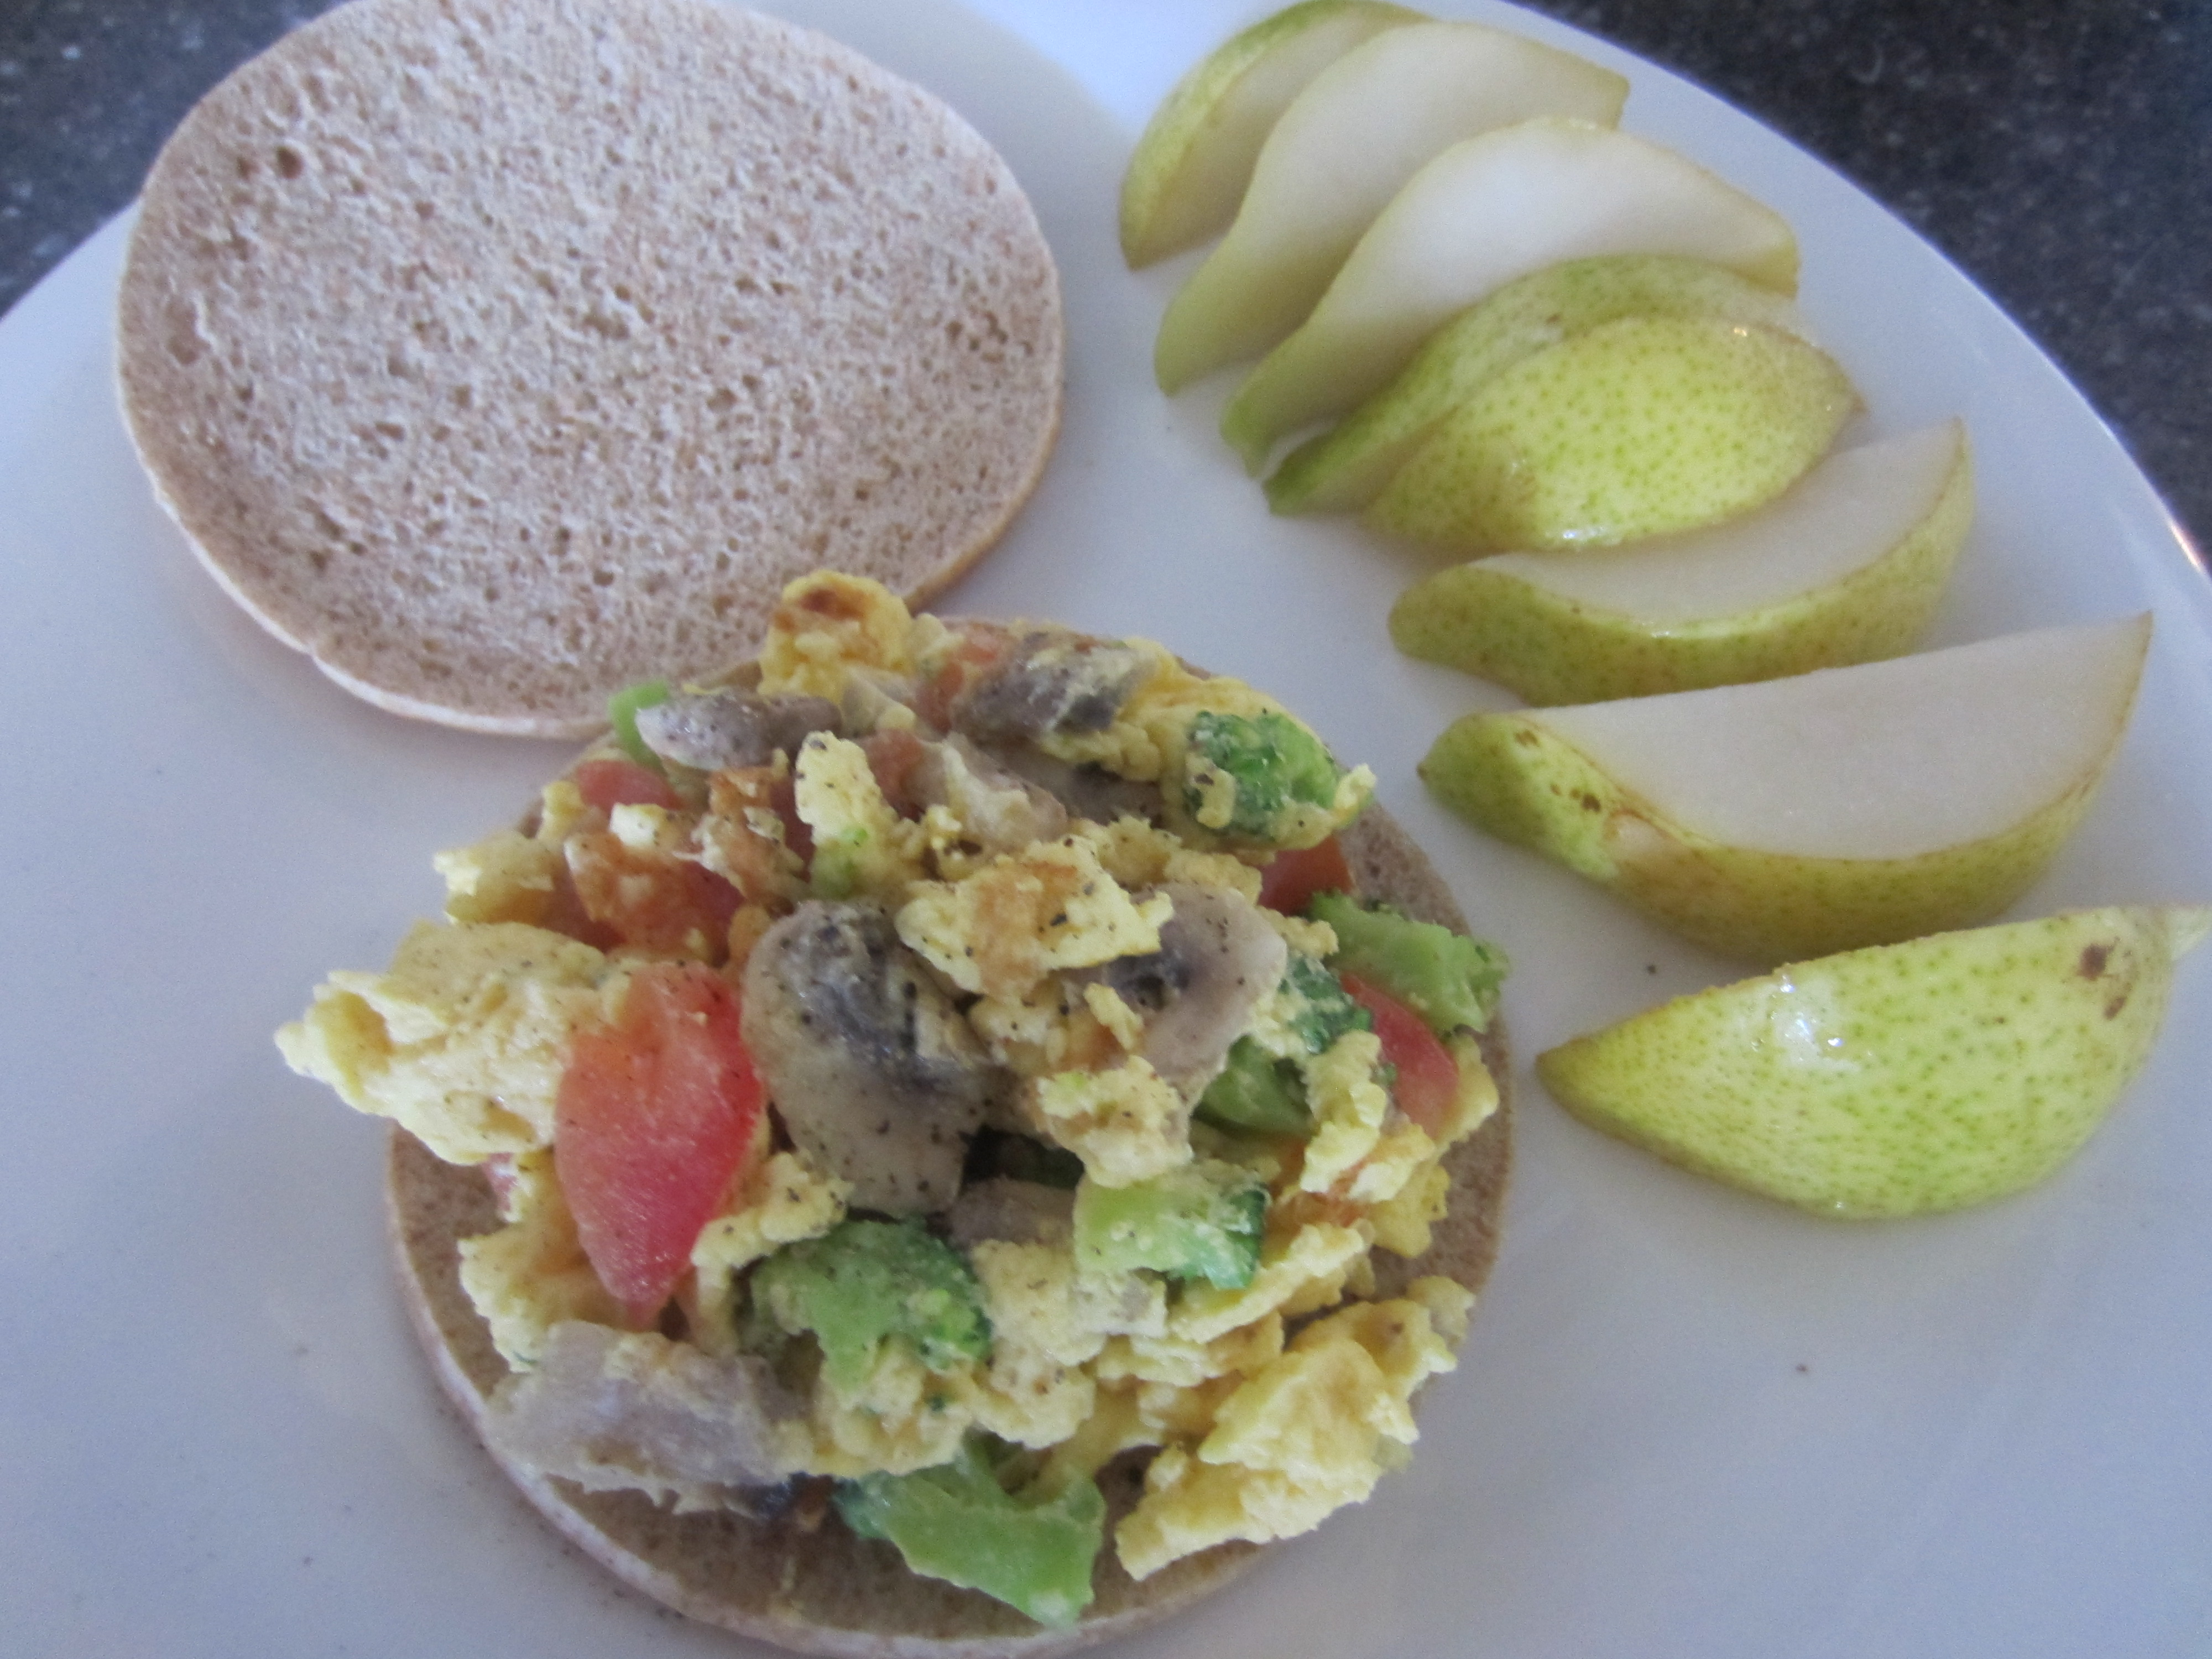 Scrambled egg and veggie sandwich